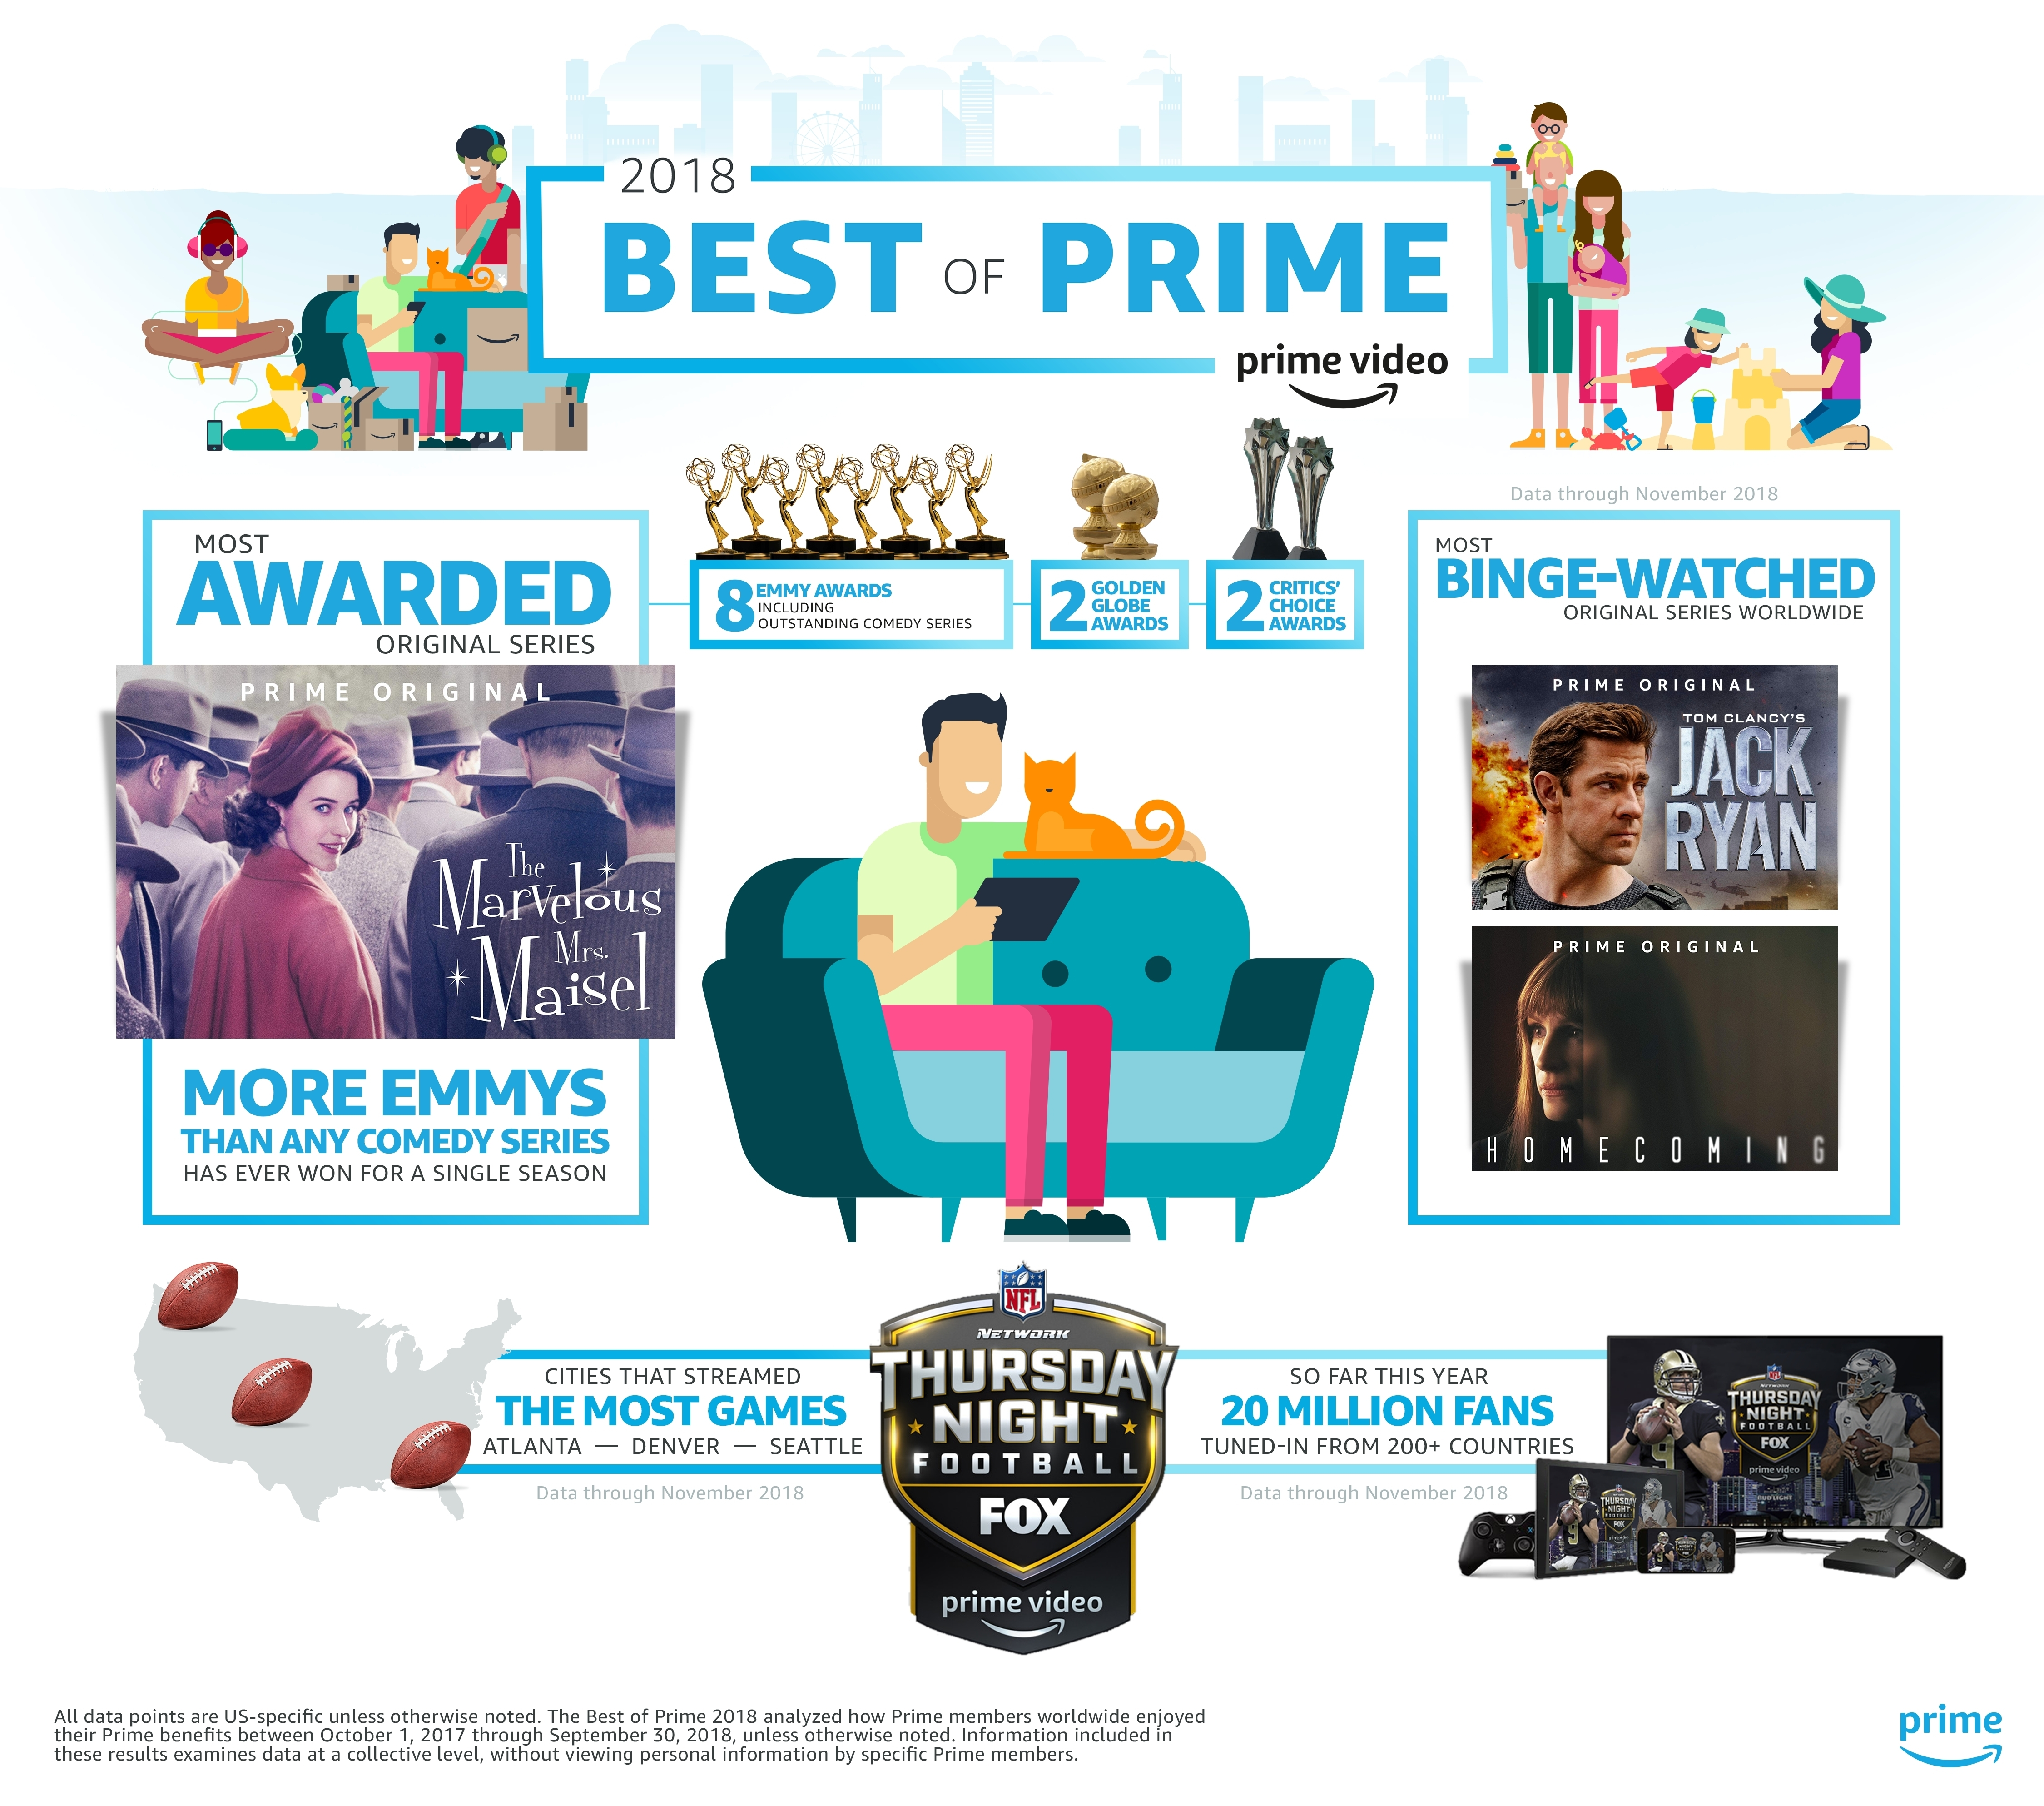 ef54b1b51215 CORRECTING and REPLACING Amazon's Best of Prime 2018: Prime Members ...